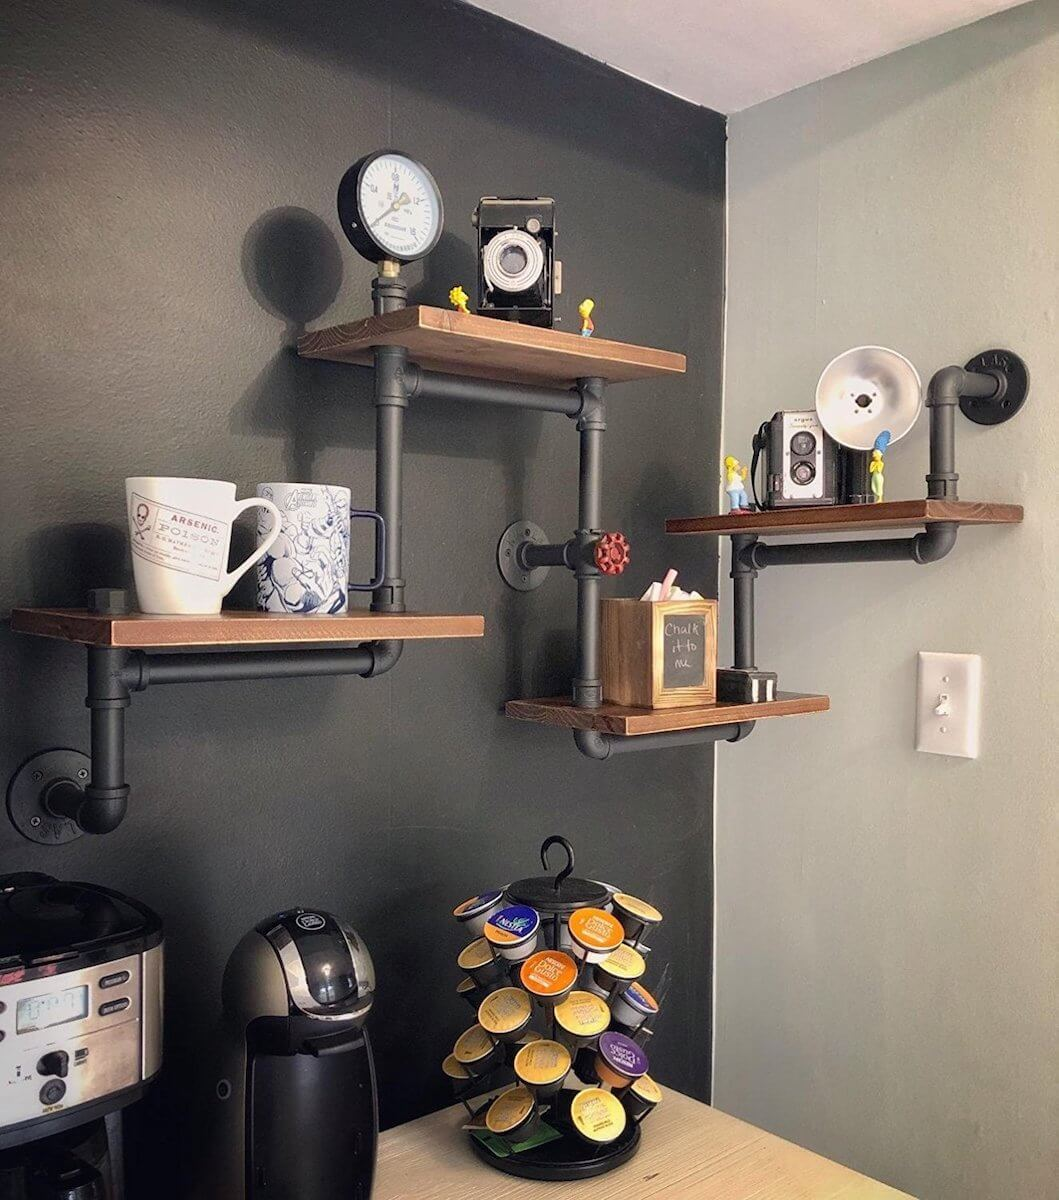 4 Layer Large Pipe Shelving Unit